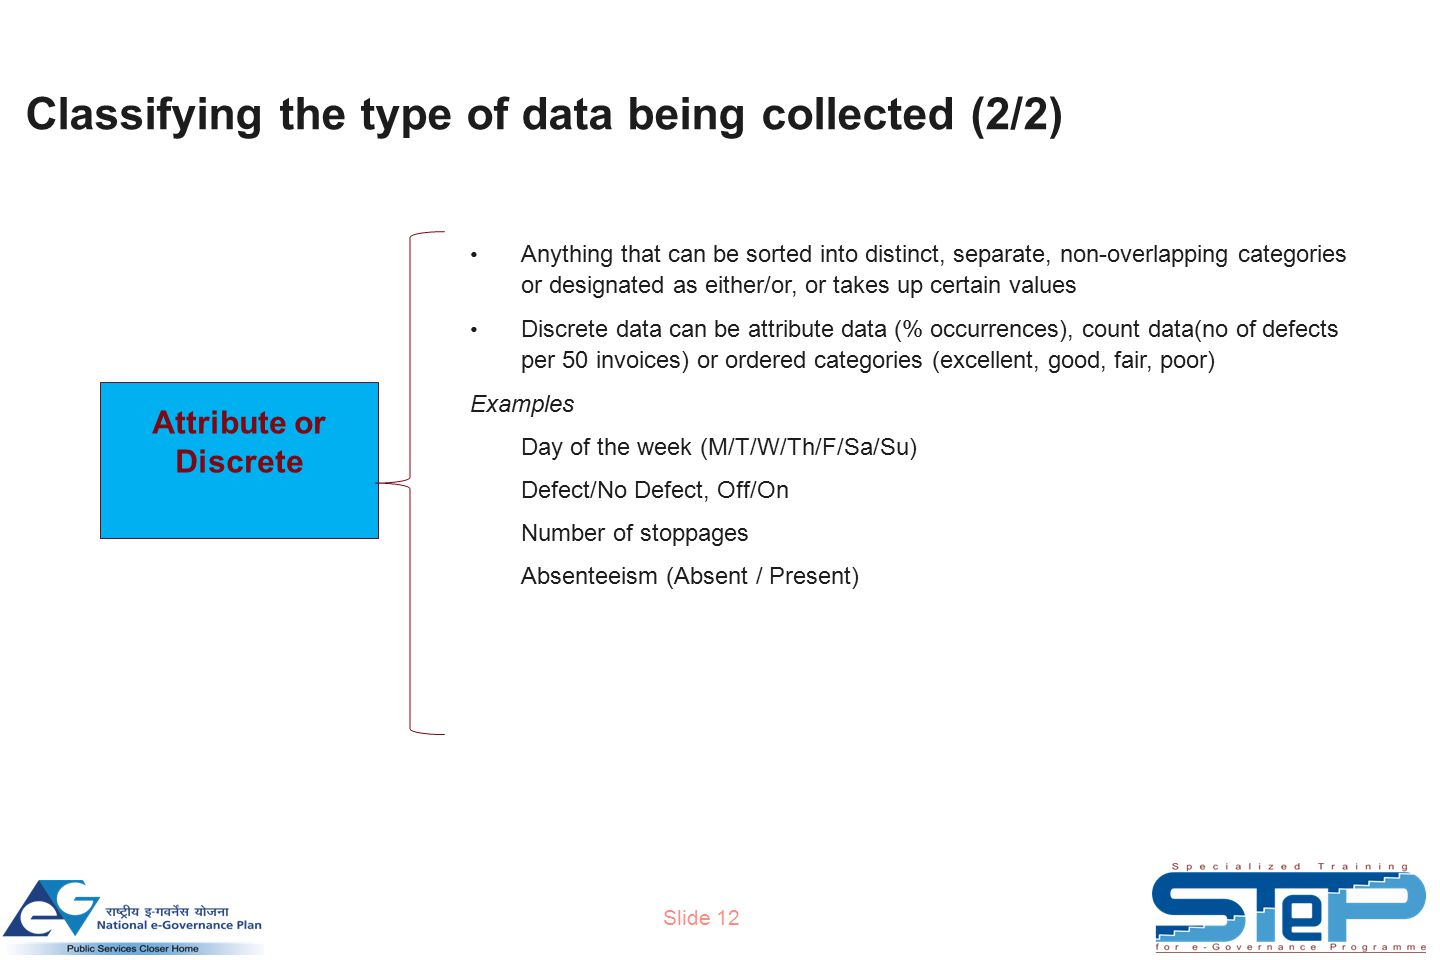 Slide 12 Classifying the type of data being collected (2/2) Attribute or Discrete Anything that can be sorted into distinct, separate, non-overlapping categories or designated as either/or, or takes up certain values Discrete data can be attribute data (% occurrences), count data(no of defects per 50 invoices) or ordered categories (excellent, good, fair, poor) Examples Day of the week (M/T/W/Th/F/Sa/Su) Defect/No Defect, Off/On Number of stoppages Absenteeism (Absent / Present)